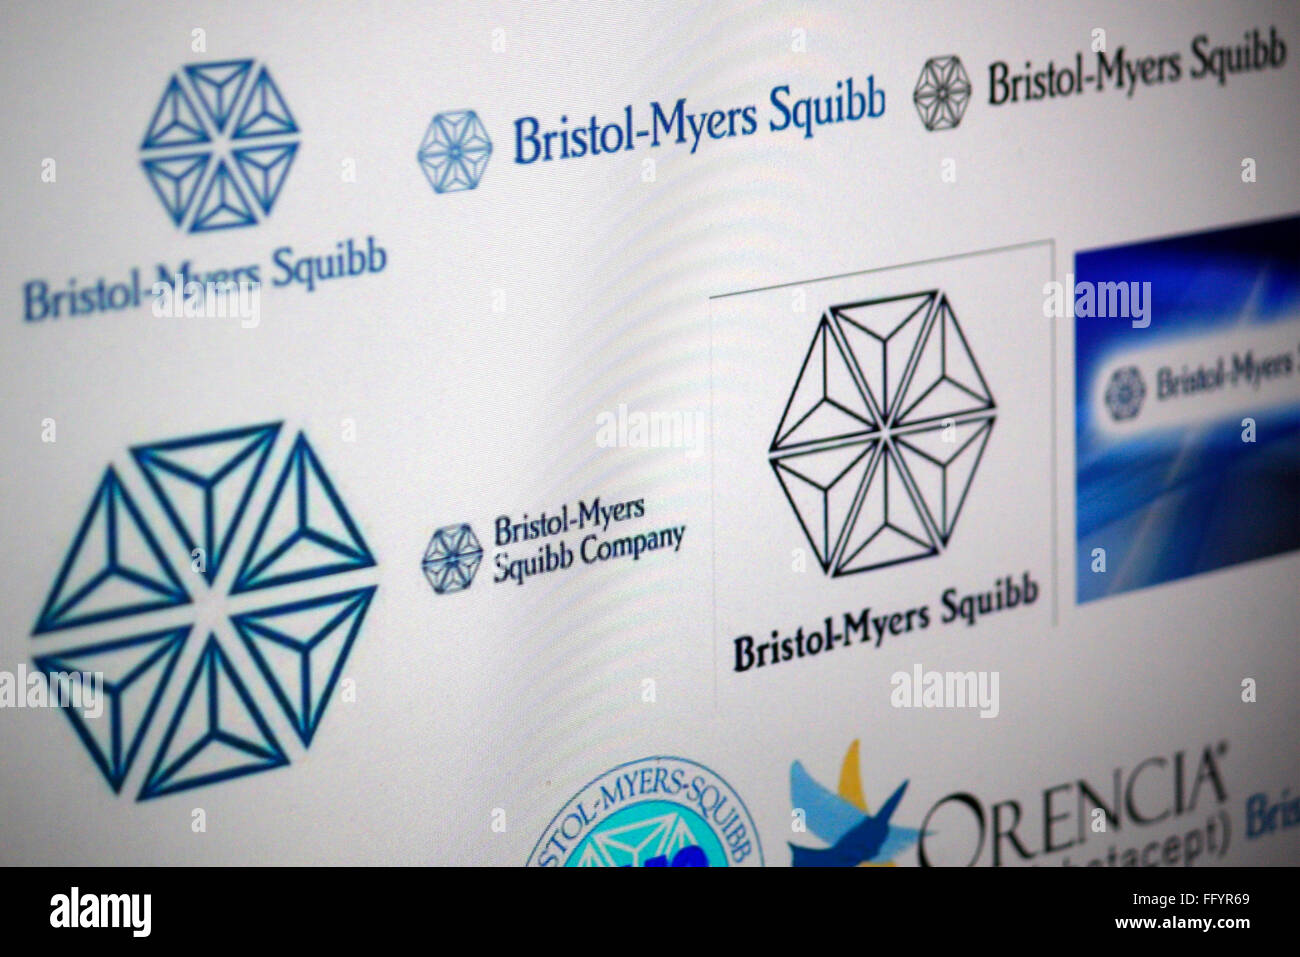 Markenname: 'Bristol Myers Squibb'. - Stock Image